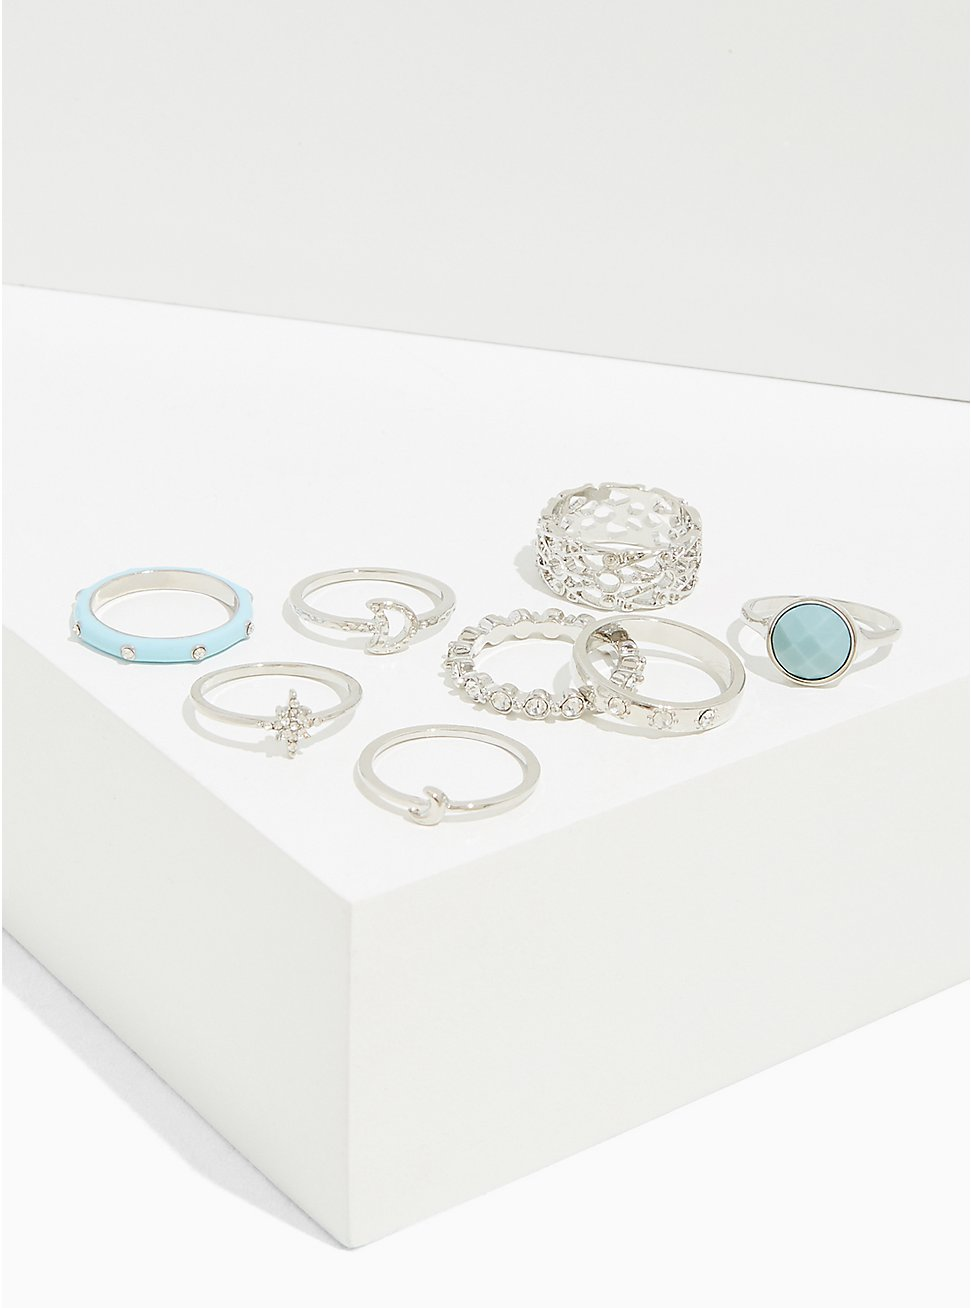 Silver-Tone & Aqua Faux Stone Ring Set - Set of 8, MINT, hi-res